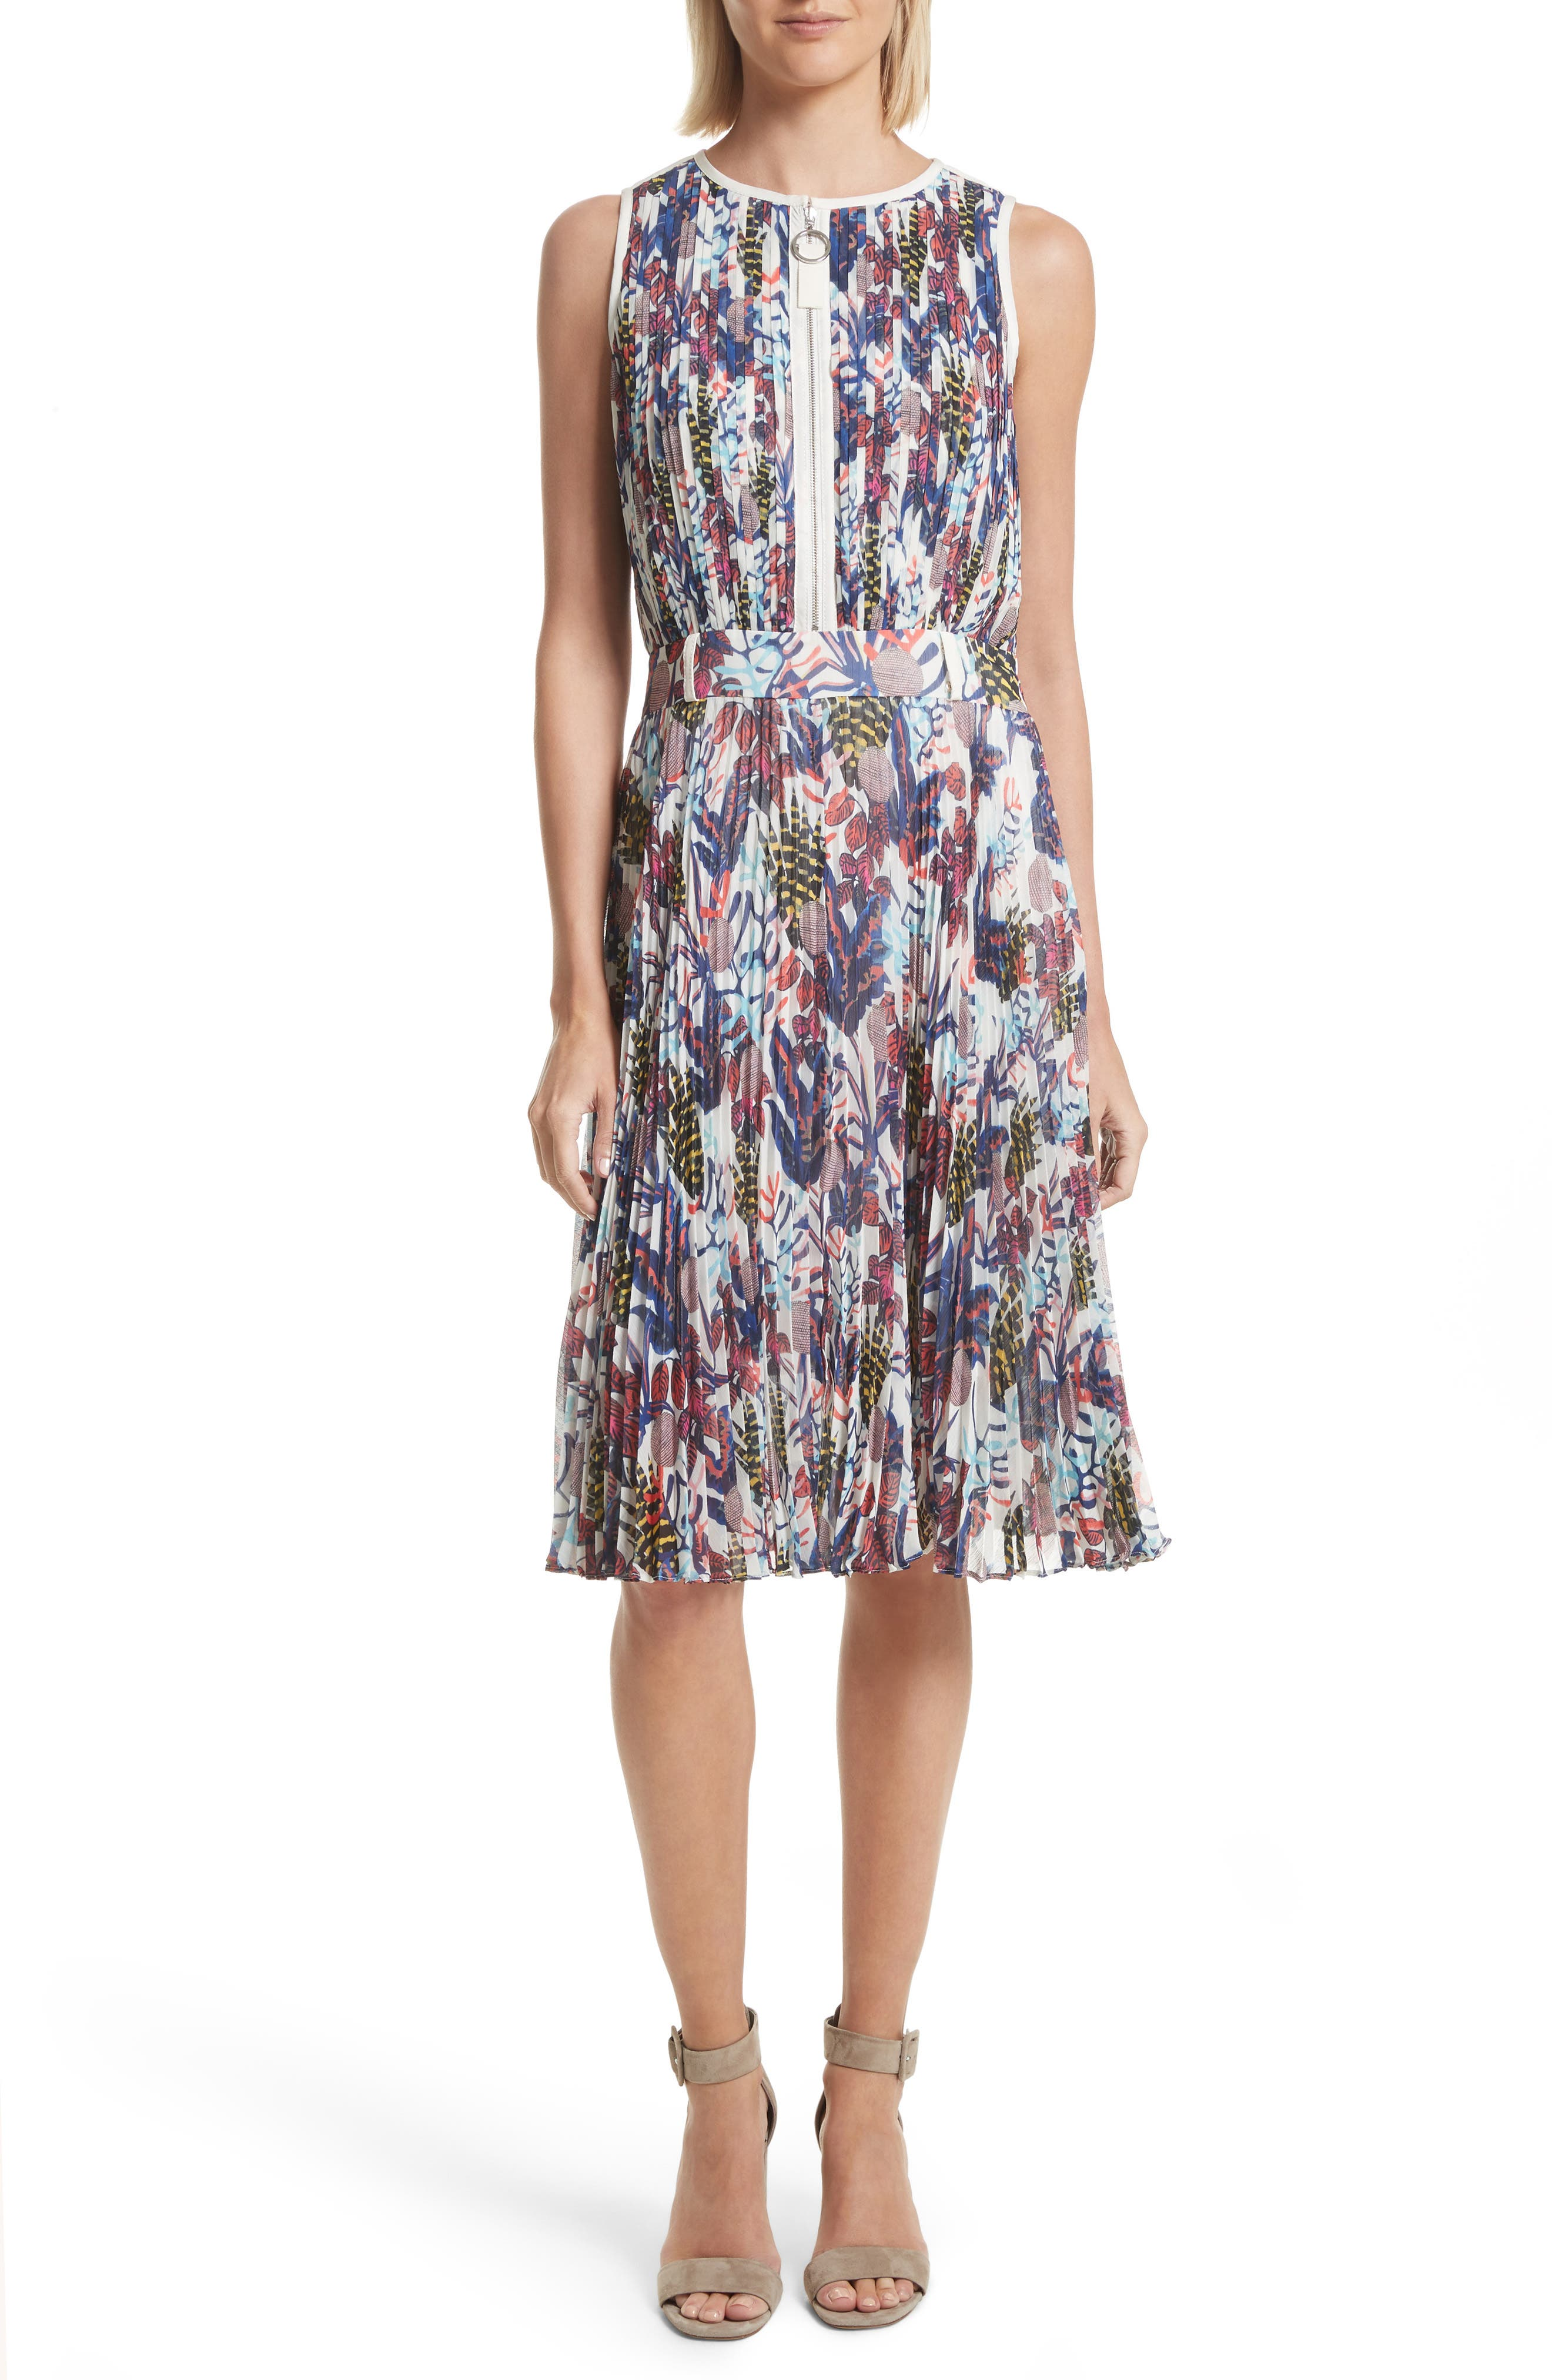 GREY Jason Wu Print Pleated Chiffon Dress